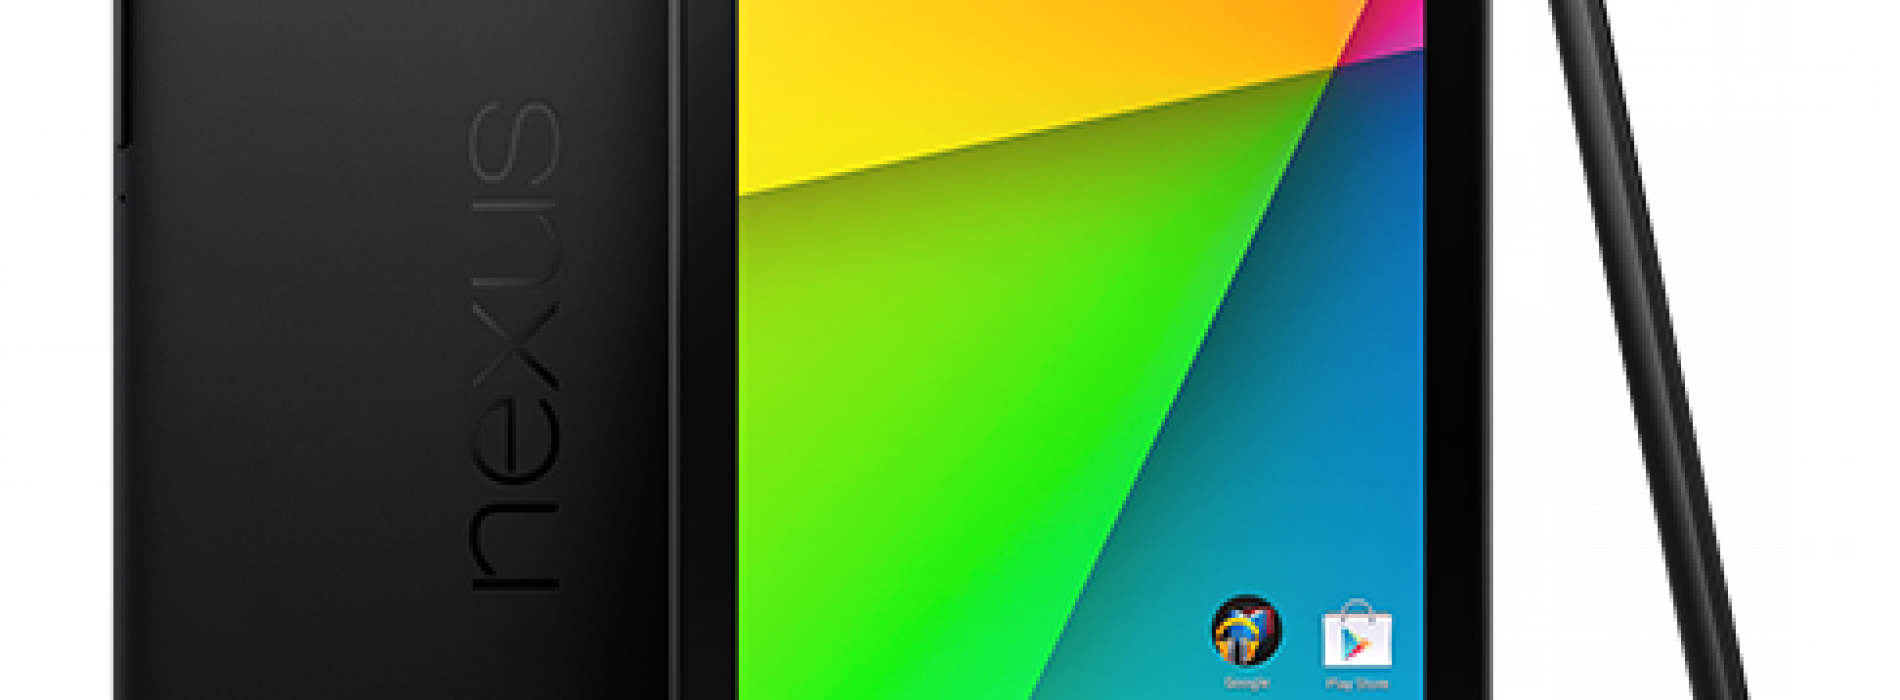 DEAL: Woot selling factory refurbished Nexus 7 2013 today only for $189 and $219